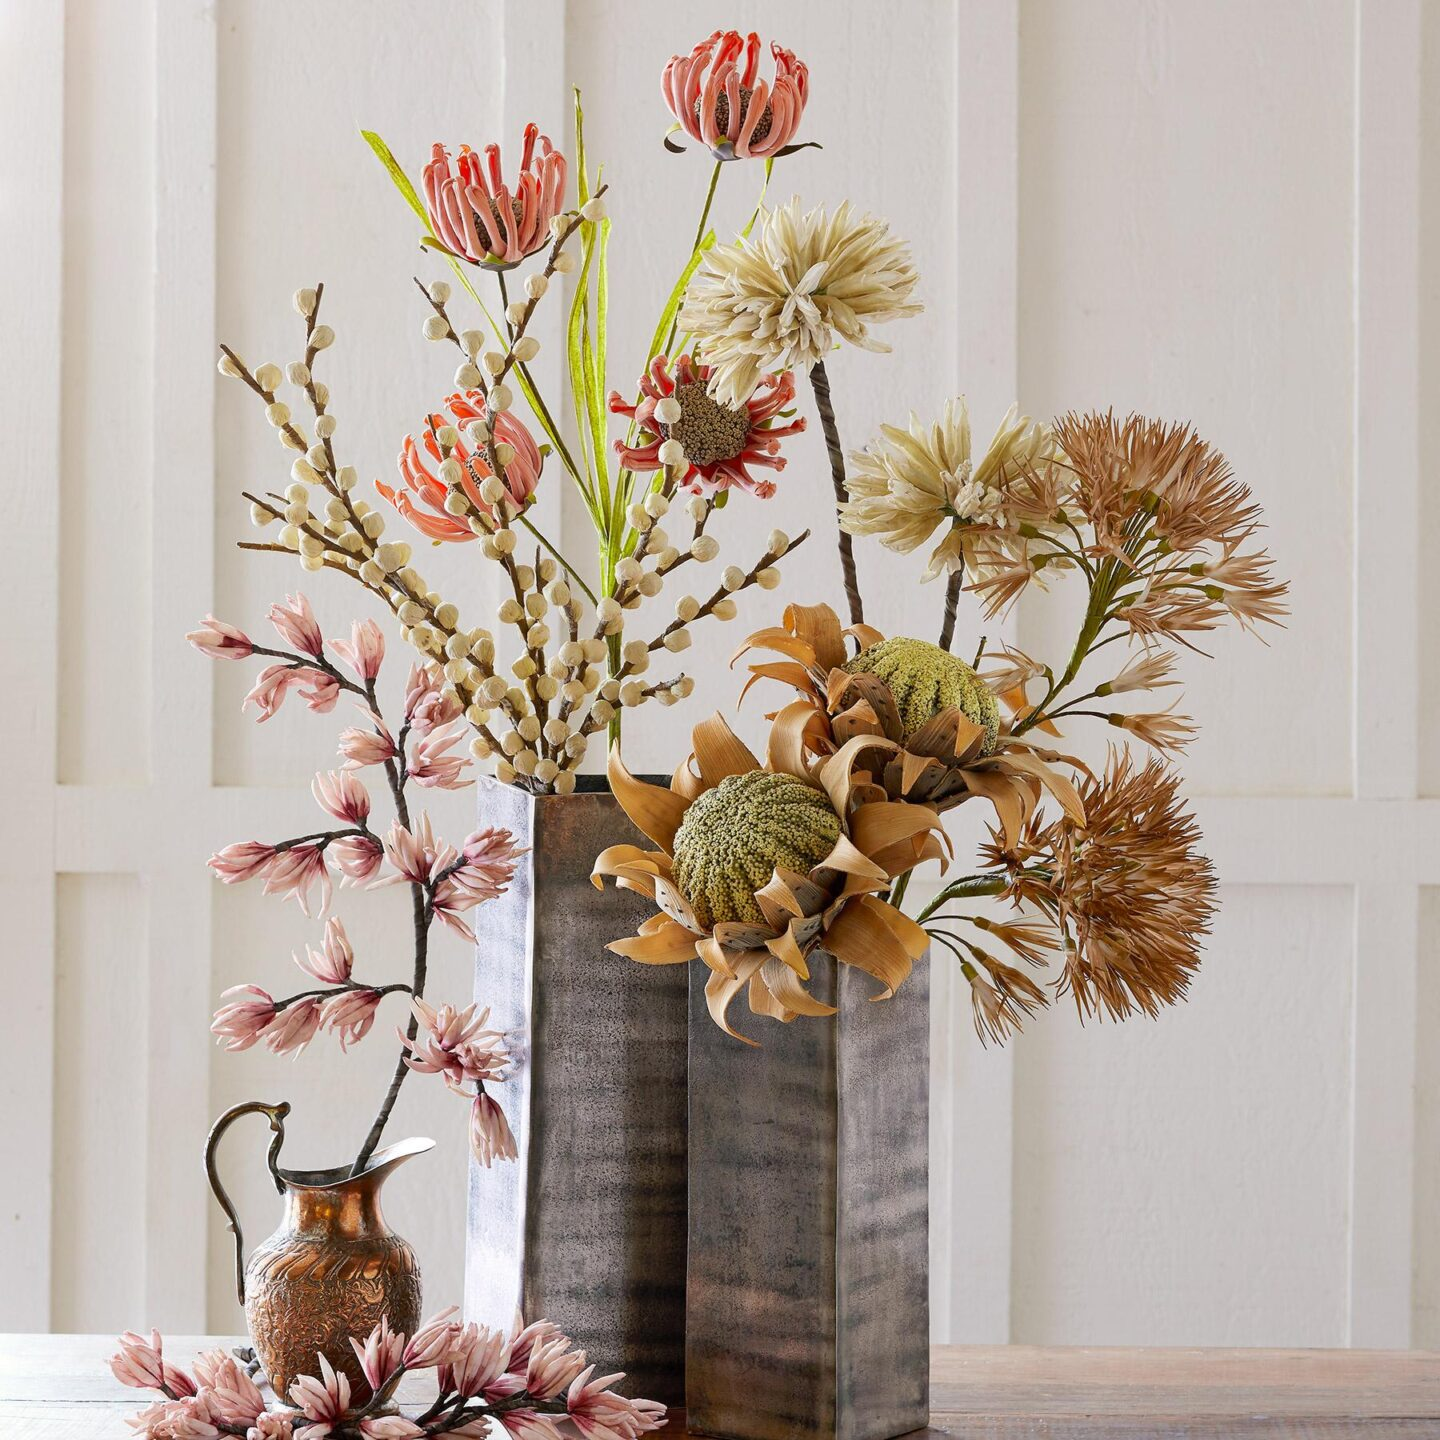 Dried botanicals from Sundance Catalog. #driedflowers #sundancecatalog